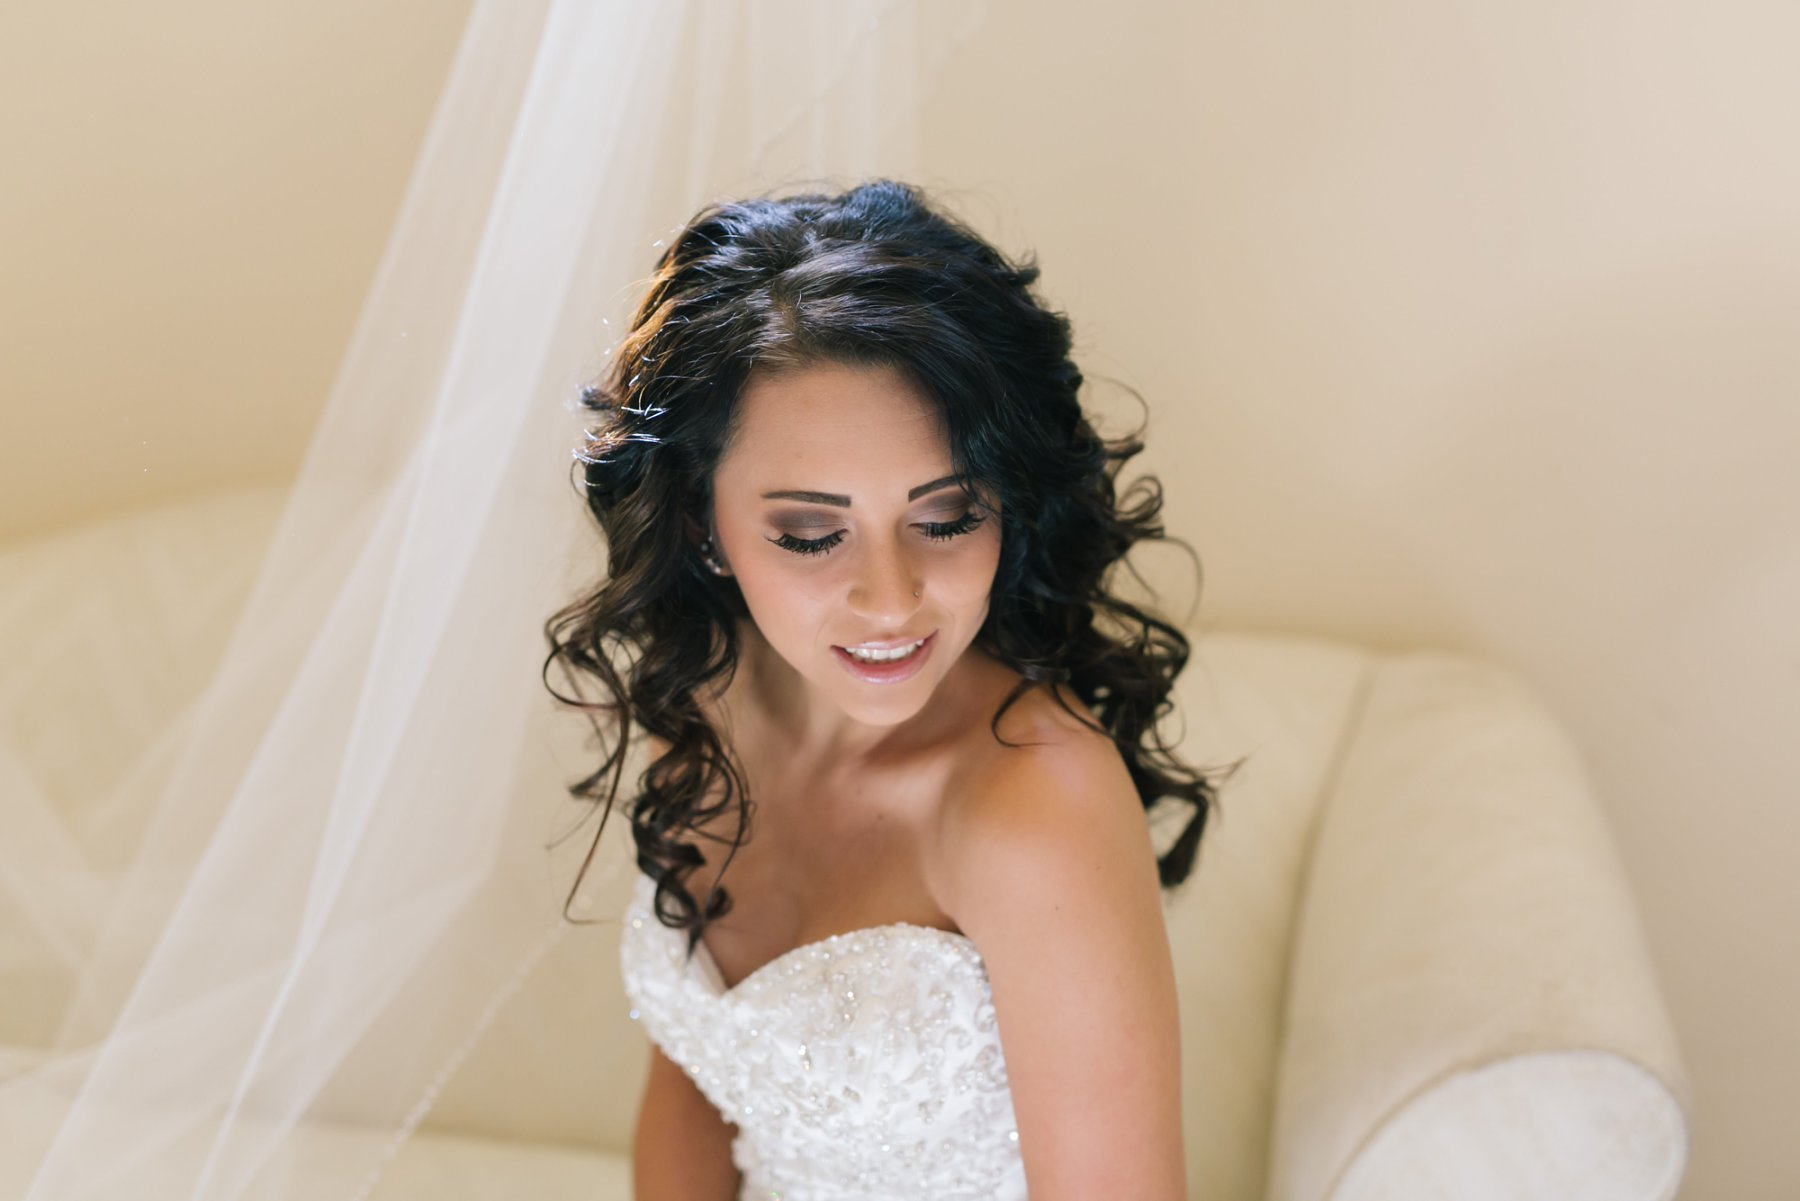 bride on wedding day at Mesa AZ wedding venue Superstition Manor